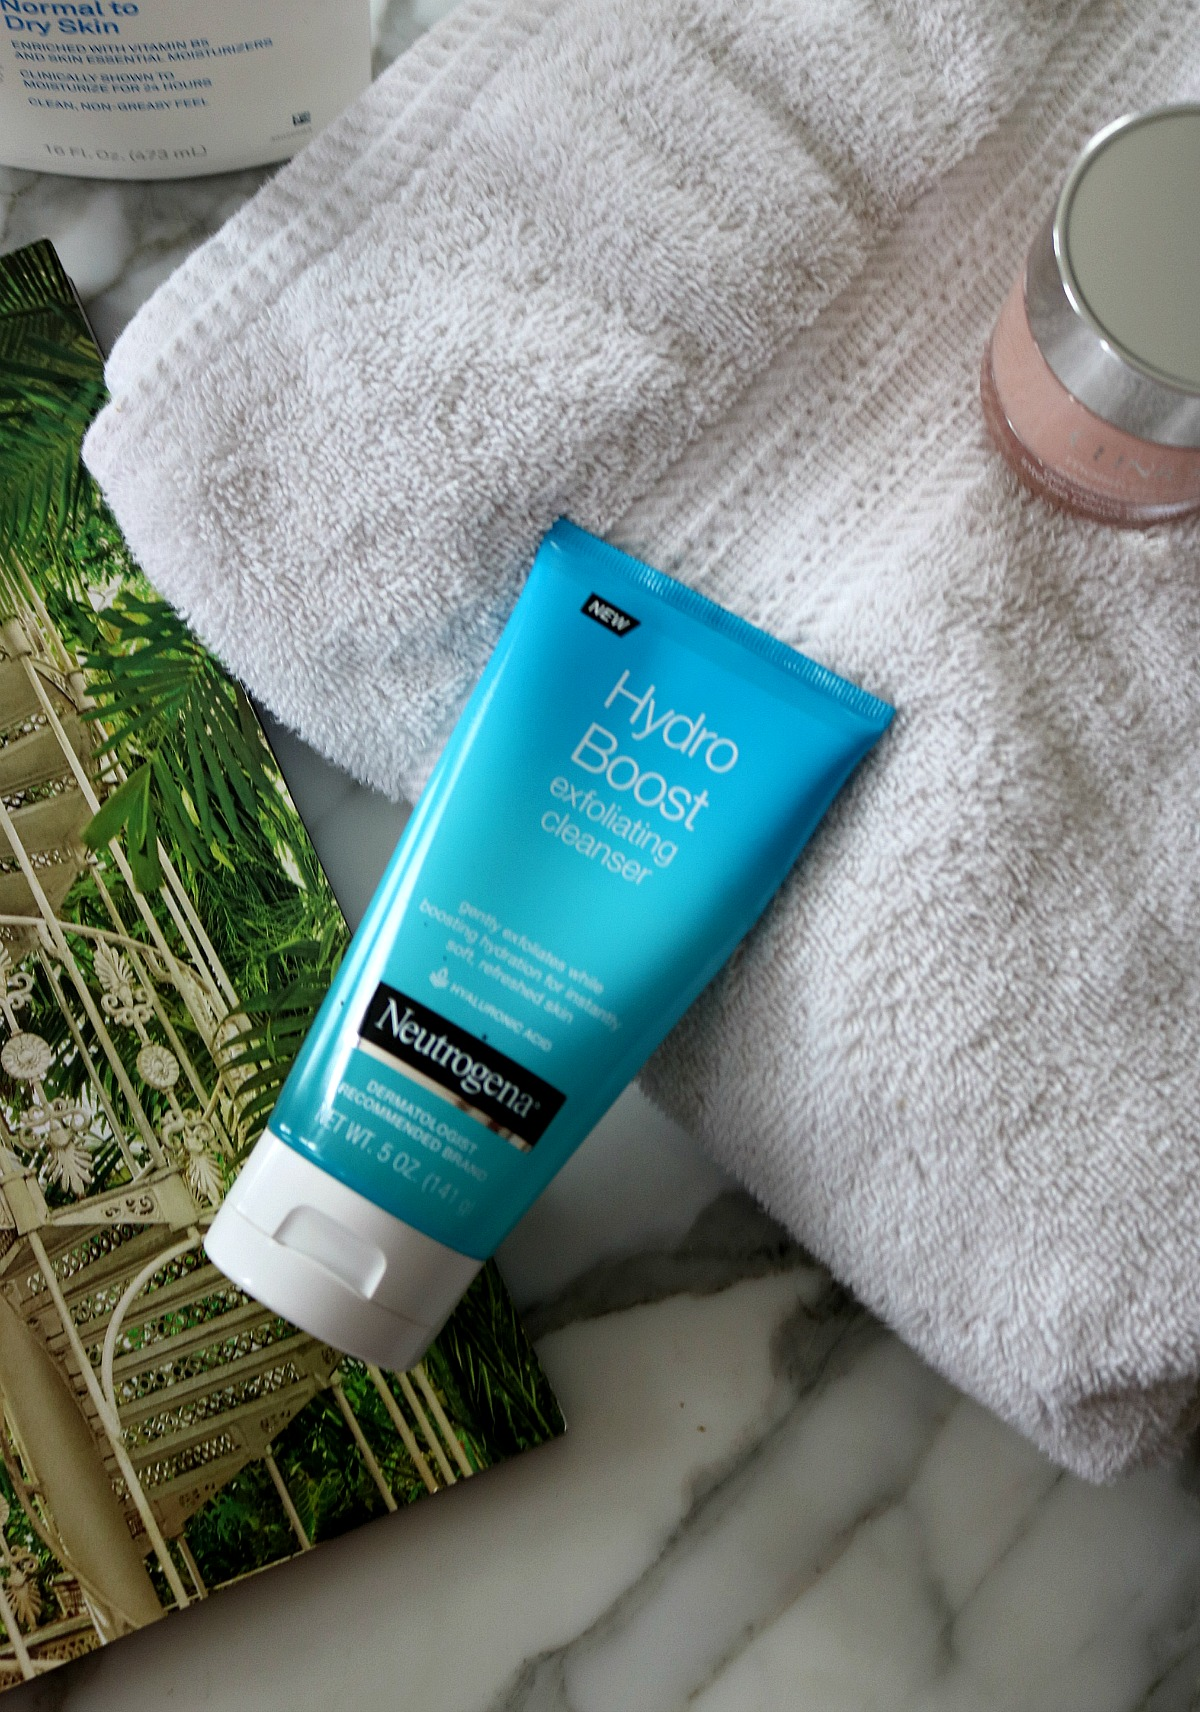 Can You Really Cleanse, Exfoliate and Moisturize at Once with Neutrogena?